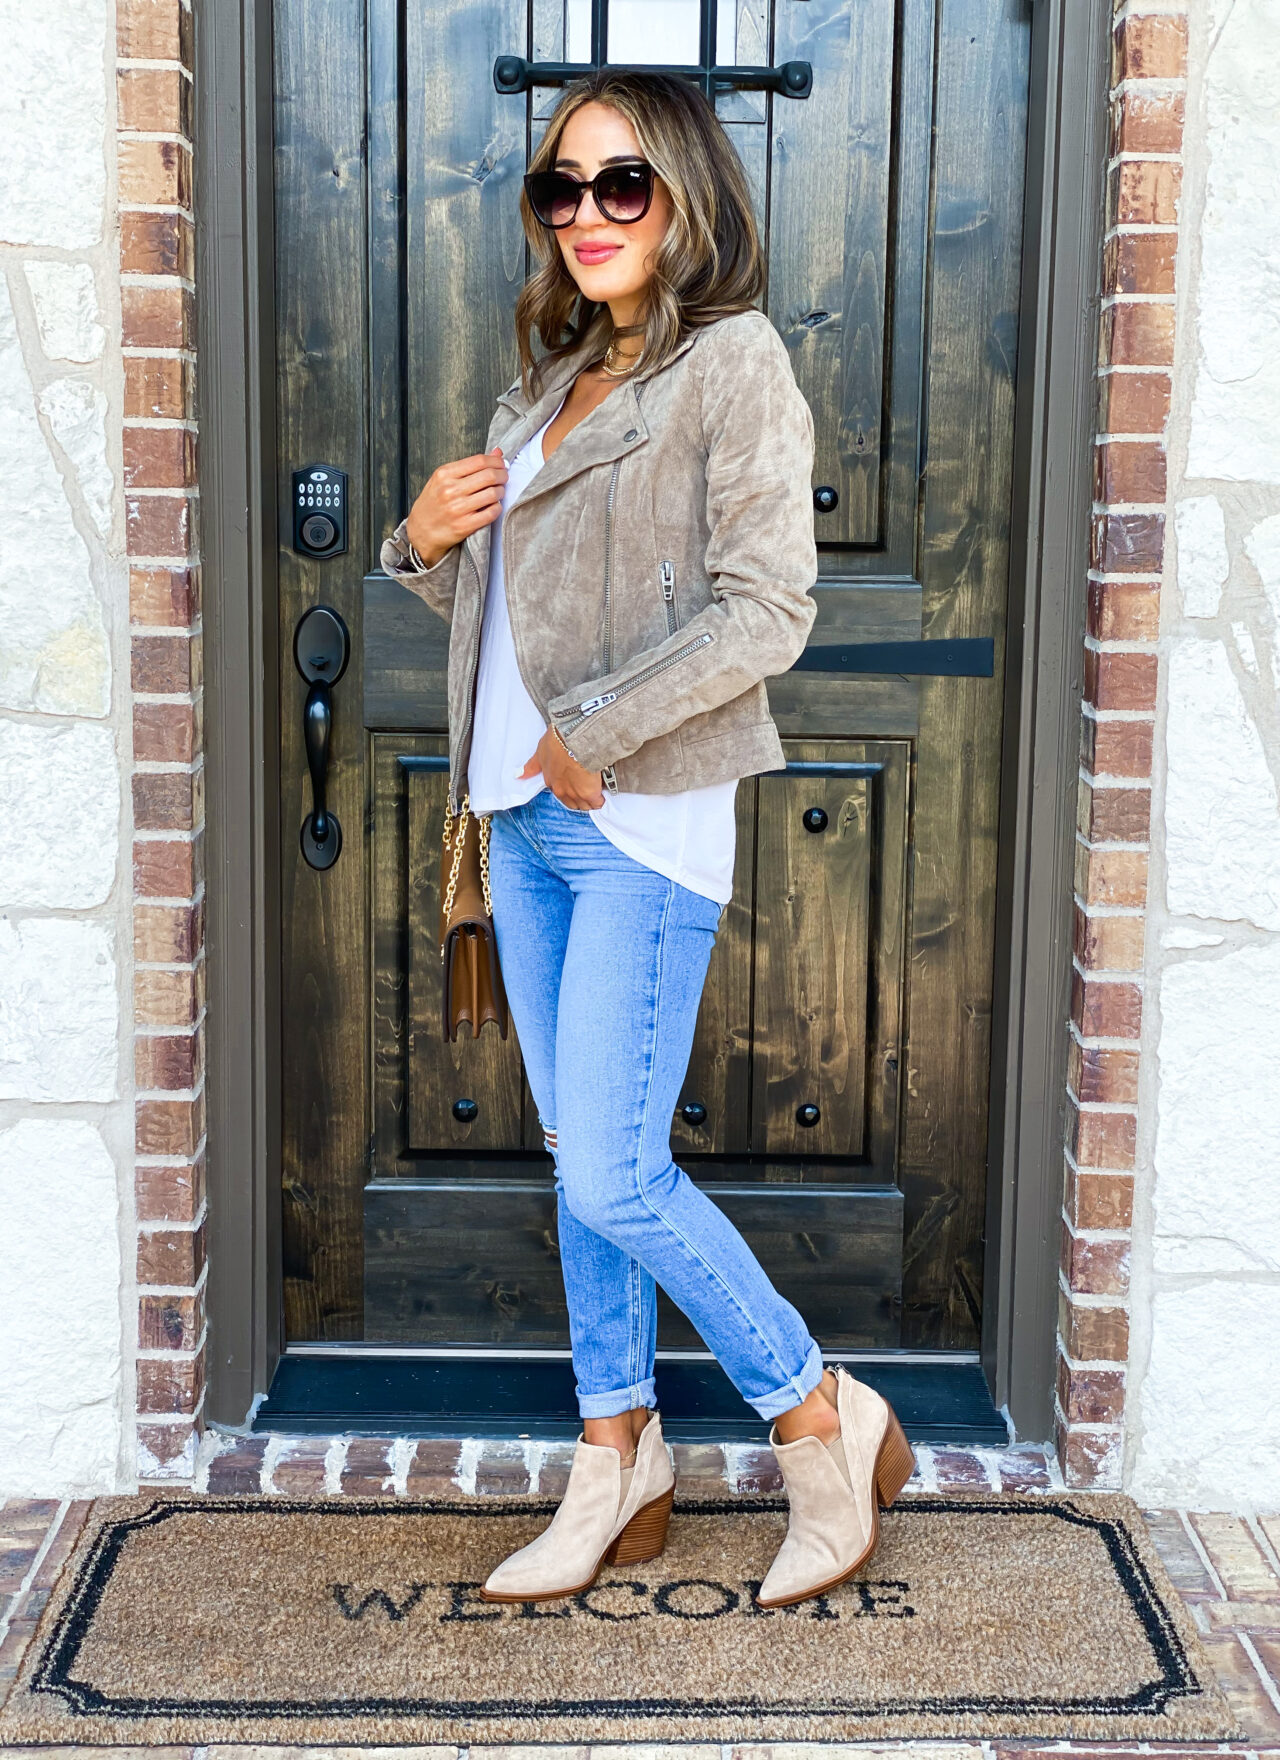 fashion and lifestyle bloggers alexis and samantha belbela styled fall look wearing a suede moto jacket, skinny paige jeans, tory burch chain bag, and vince camuto booties from the nordstrom anniversary sale 2020 public access | adoubledose.com